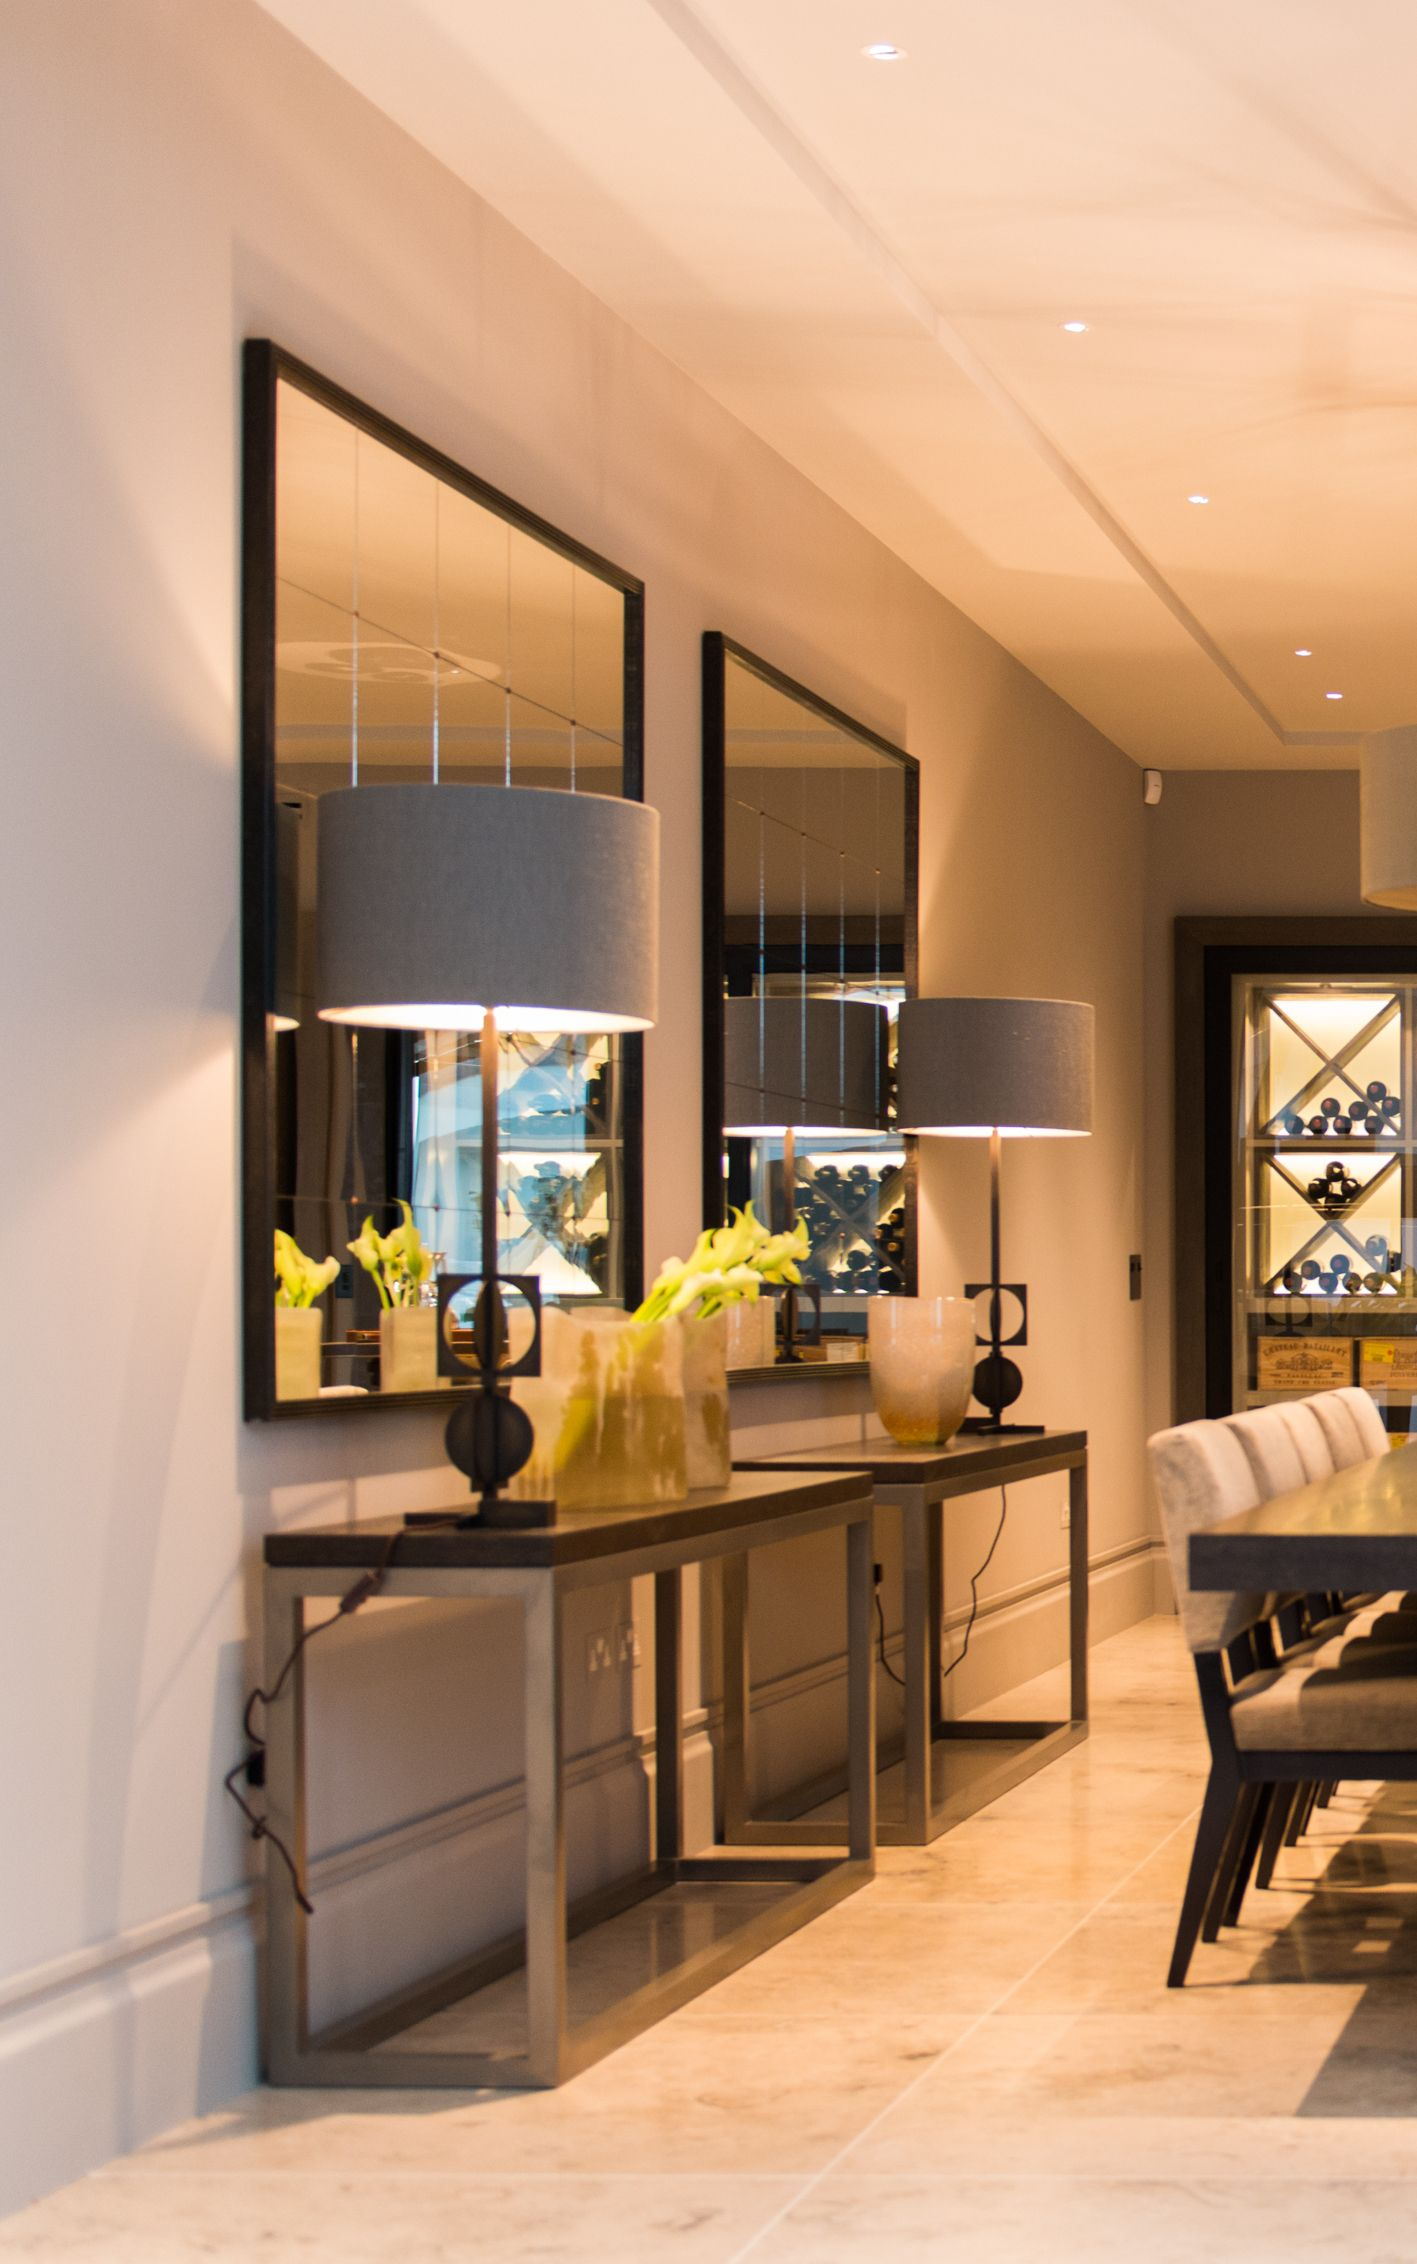 Over Sized Double Console Table And Mirror Arrangement Give Elegance And Glamour To A Contemporary Dini Small House Interior Dining Interior Dining Room Design